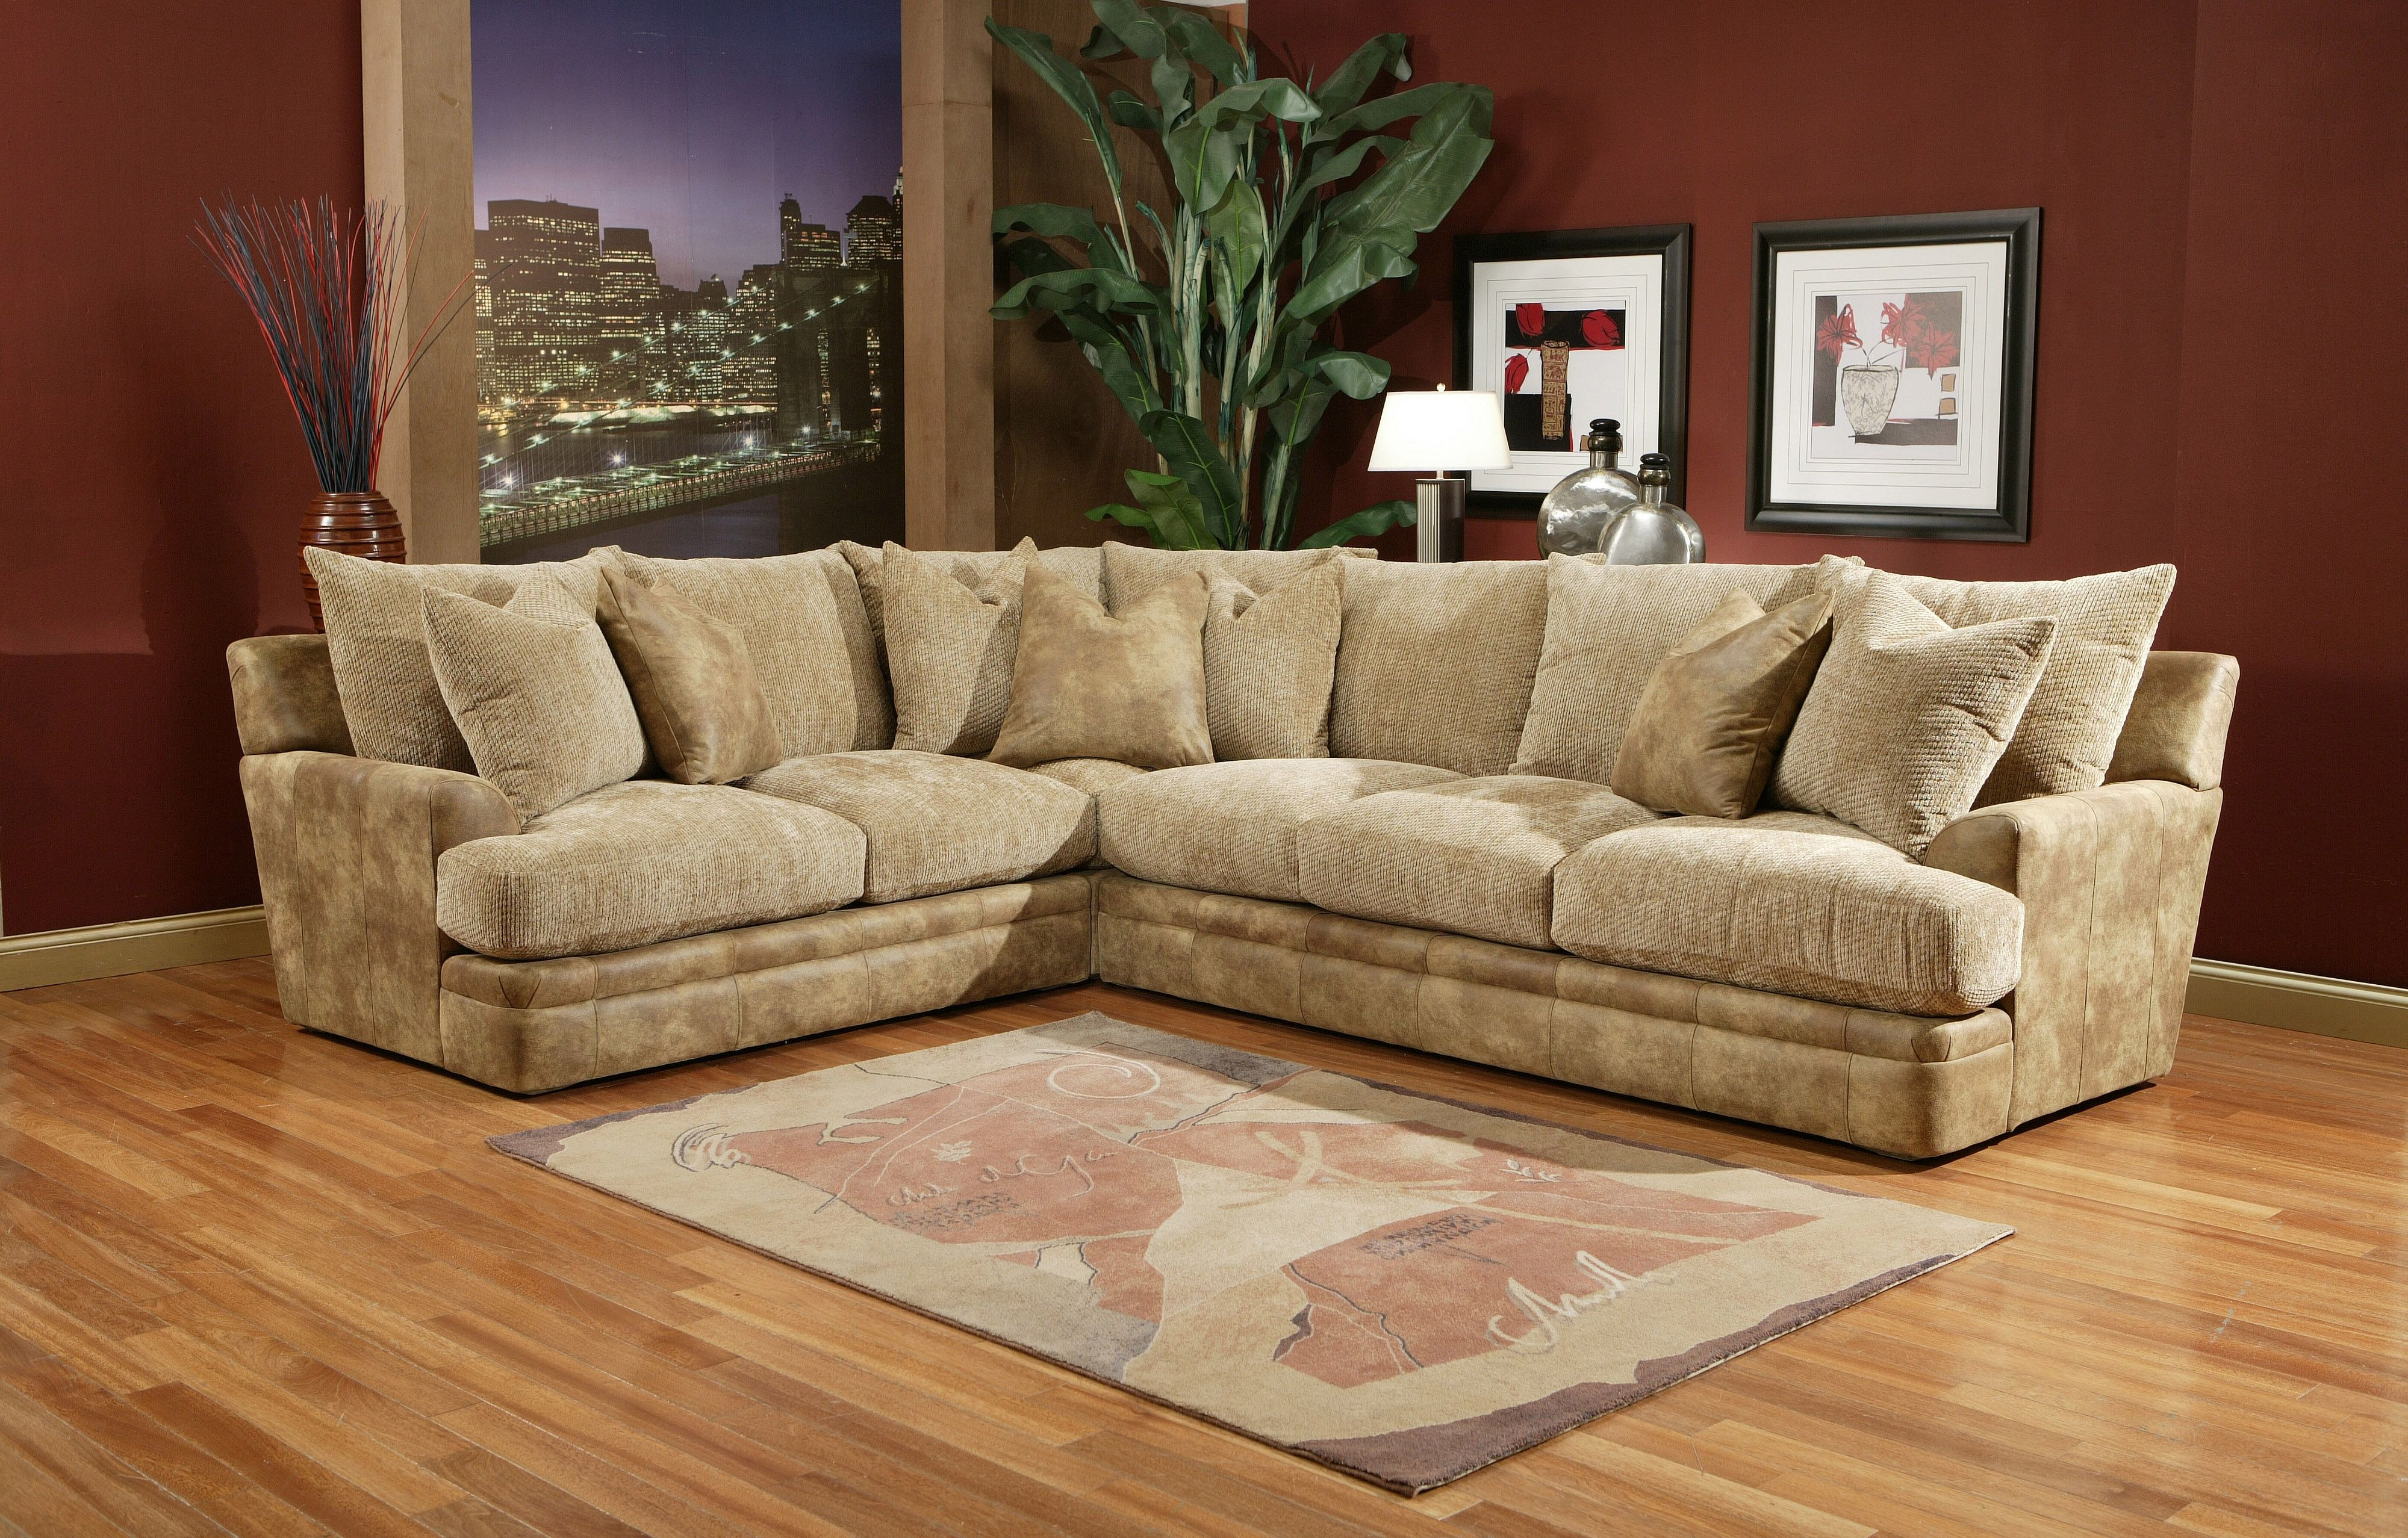 Delicieux Awesome Down Filled Sectional Sofa , Awesome Down Filled Sectional Sofa 60  For Your Living Room